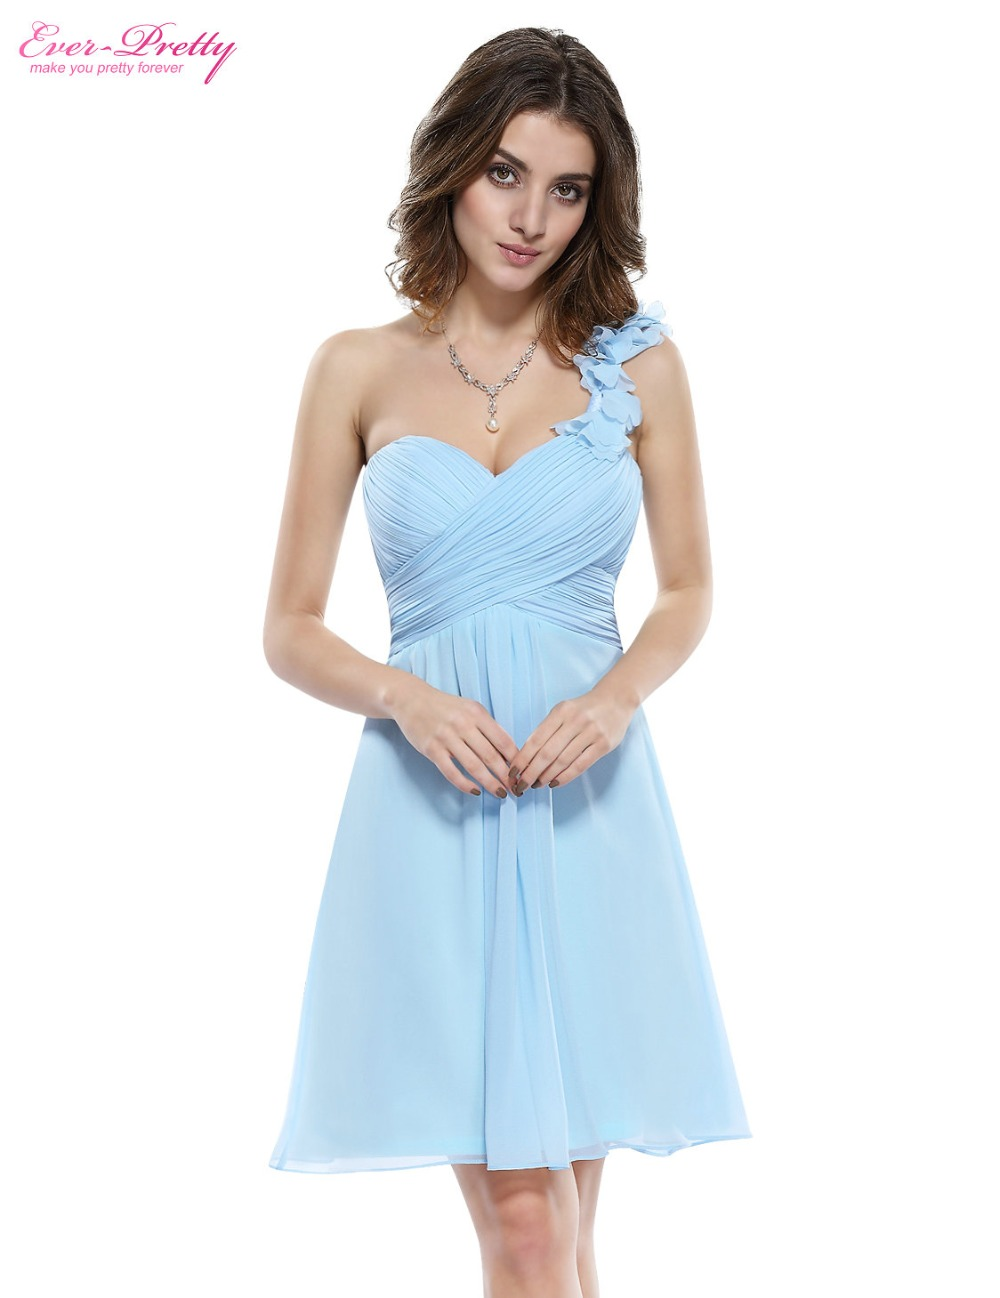 Bridesmaid Party Dresses One Shoulder Flowers Padded Ruffles Short Wedding 2016 3535 Ever Pretty